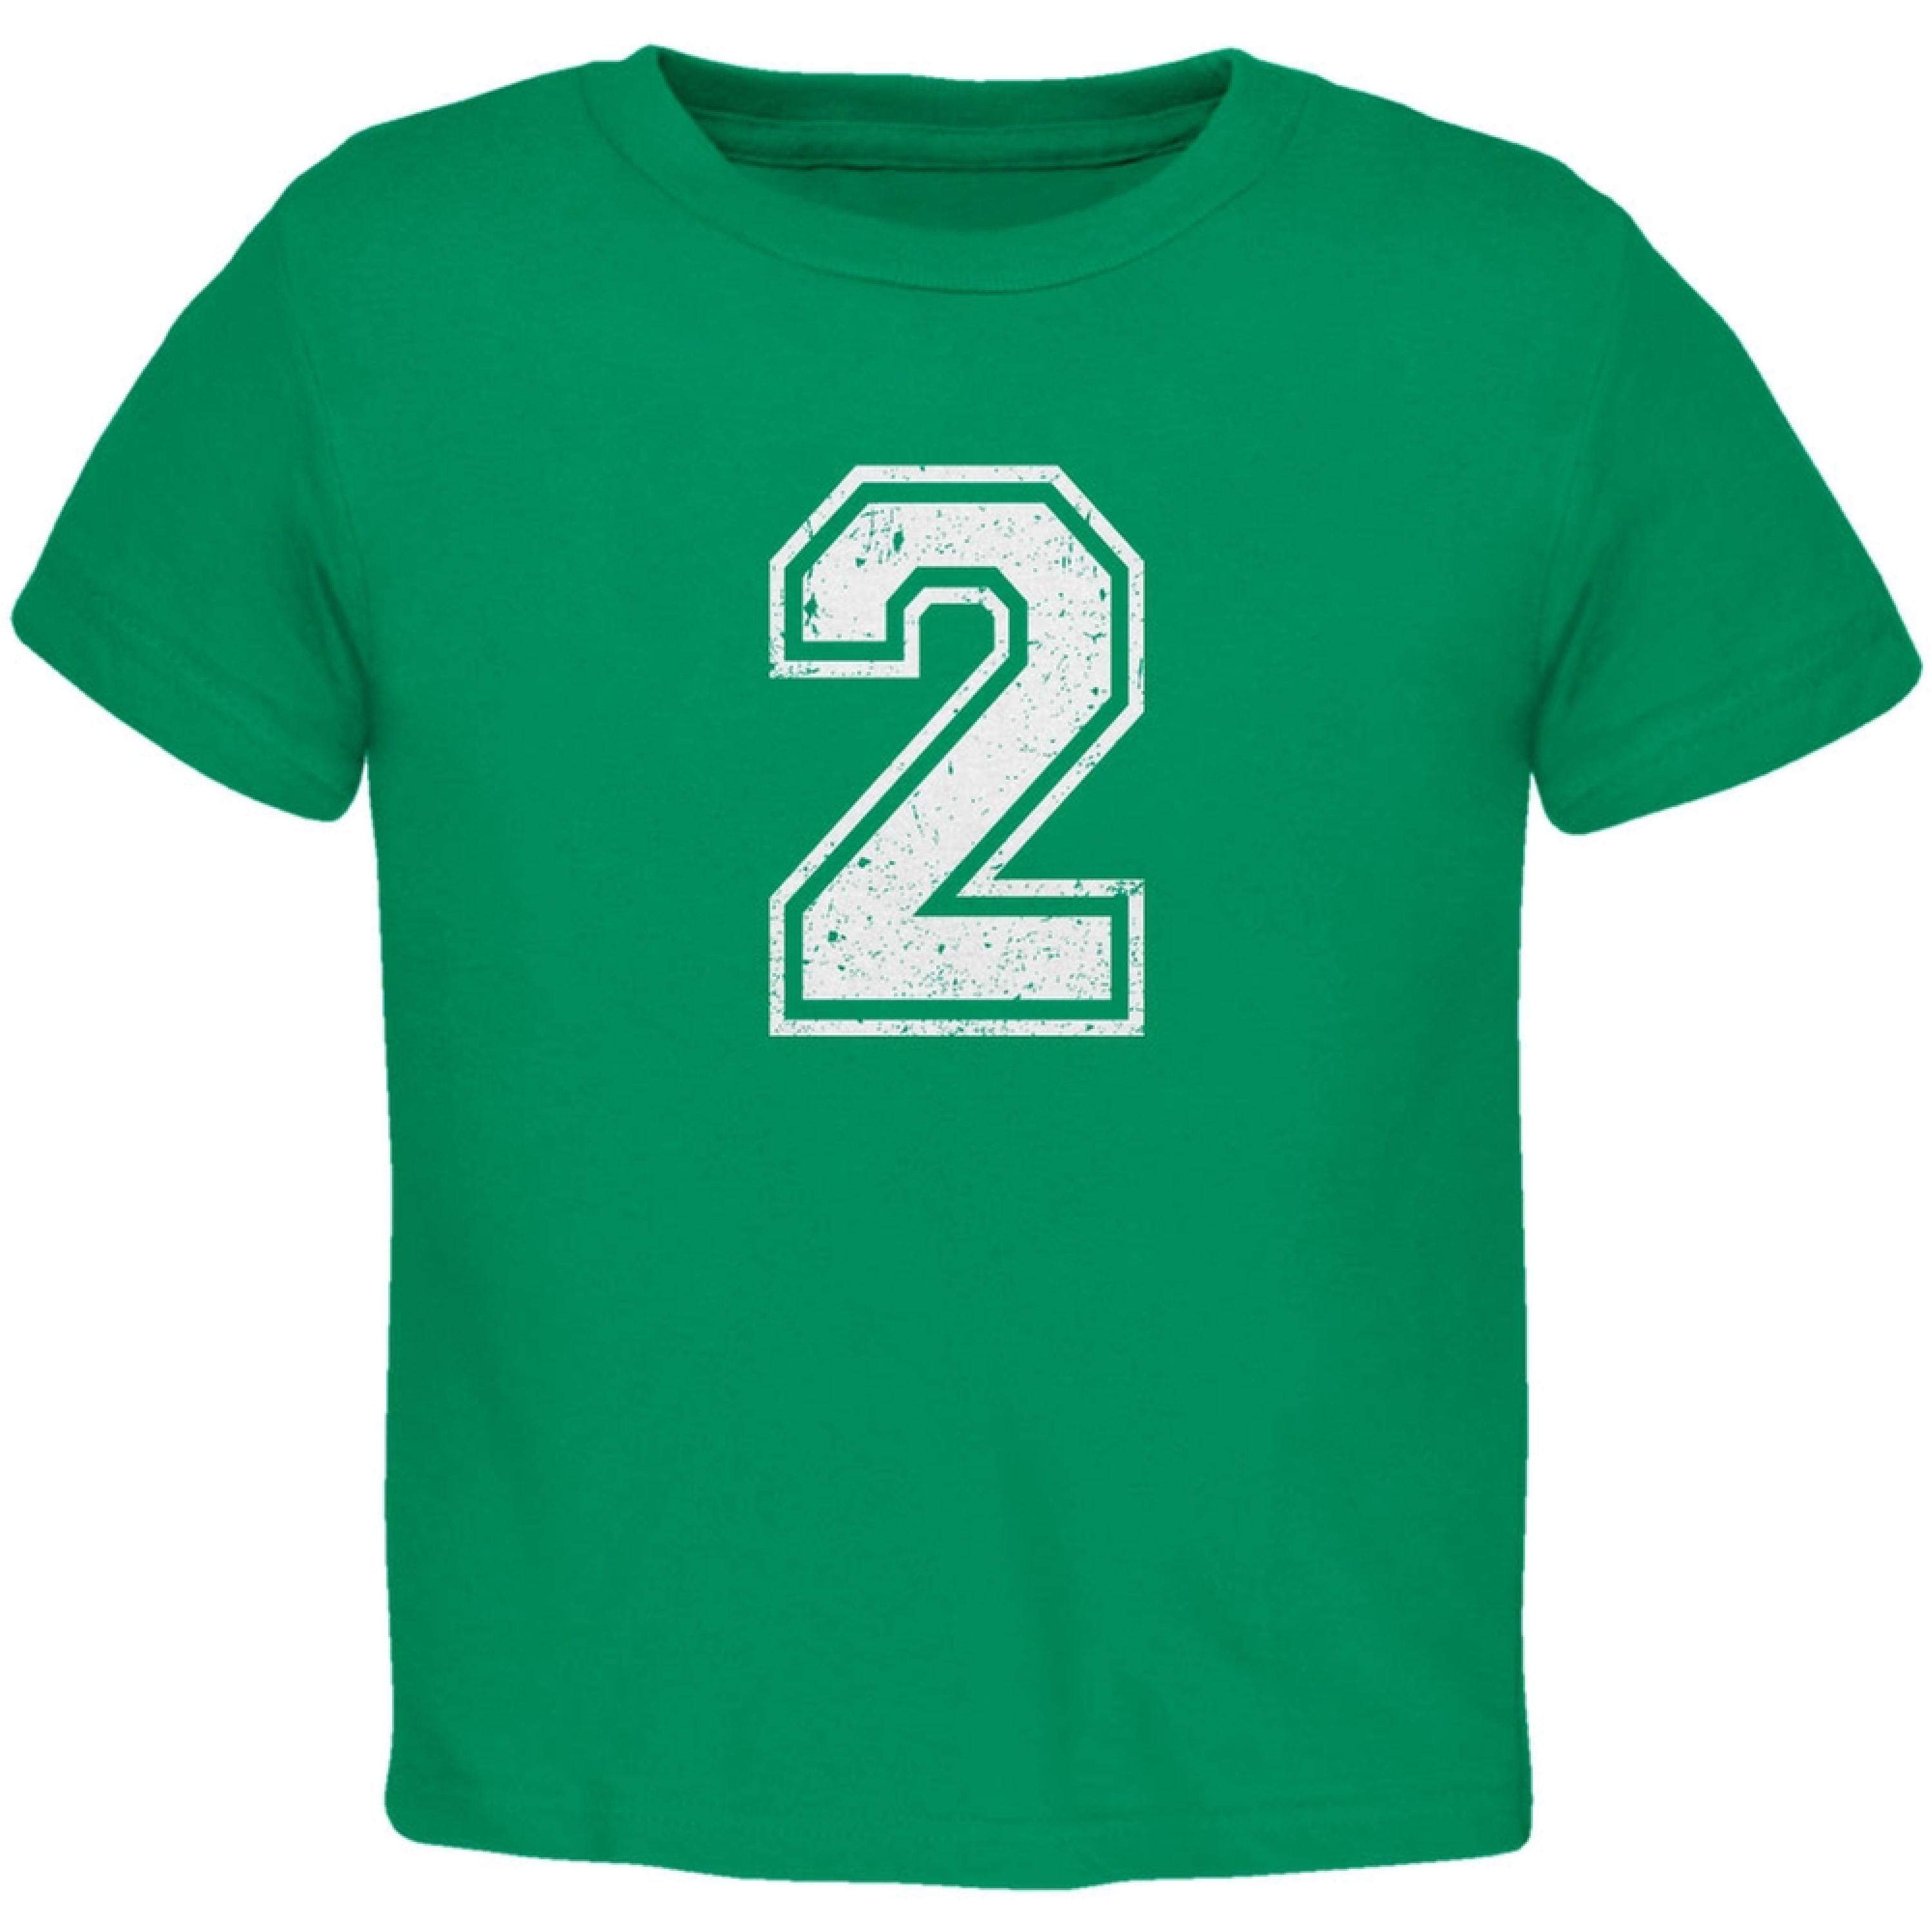 Birthday Kid Jersey 2 2nd Second Kelly Green Toddler T-Shirt